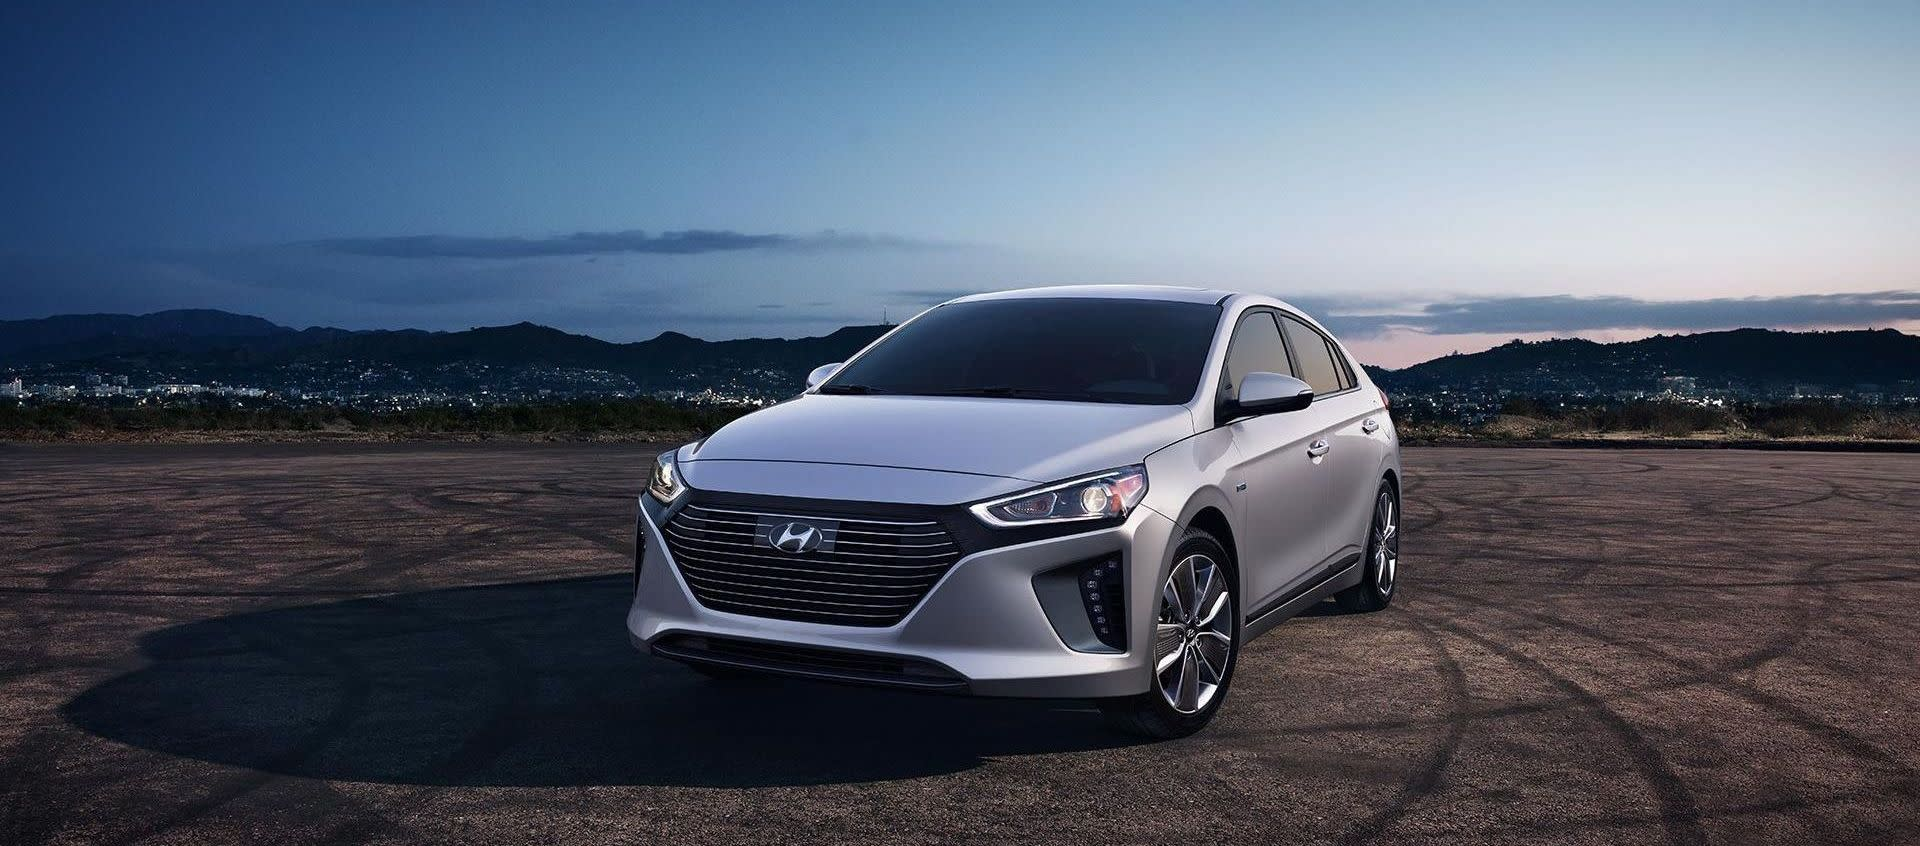 What Are the Most Efficient Hyundai Vehicles?